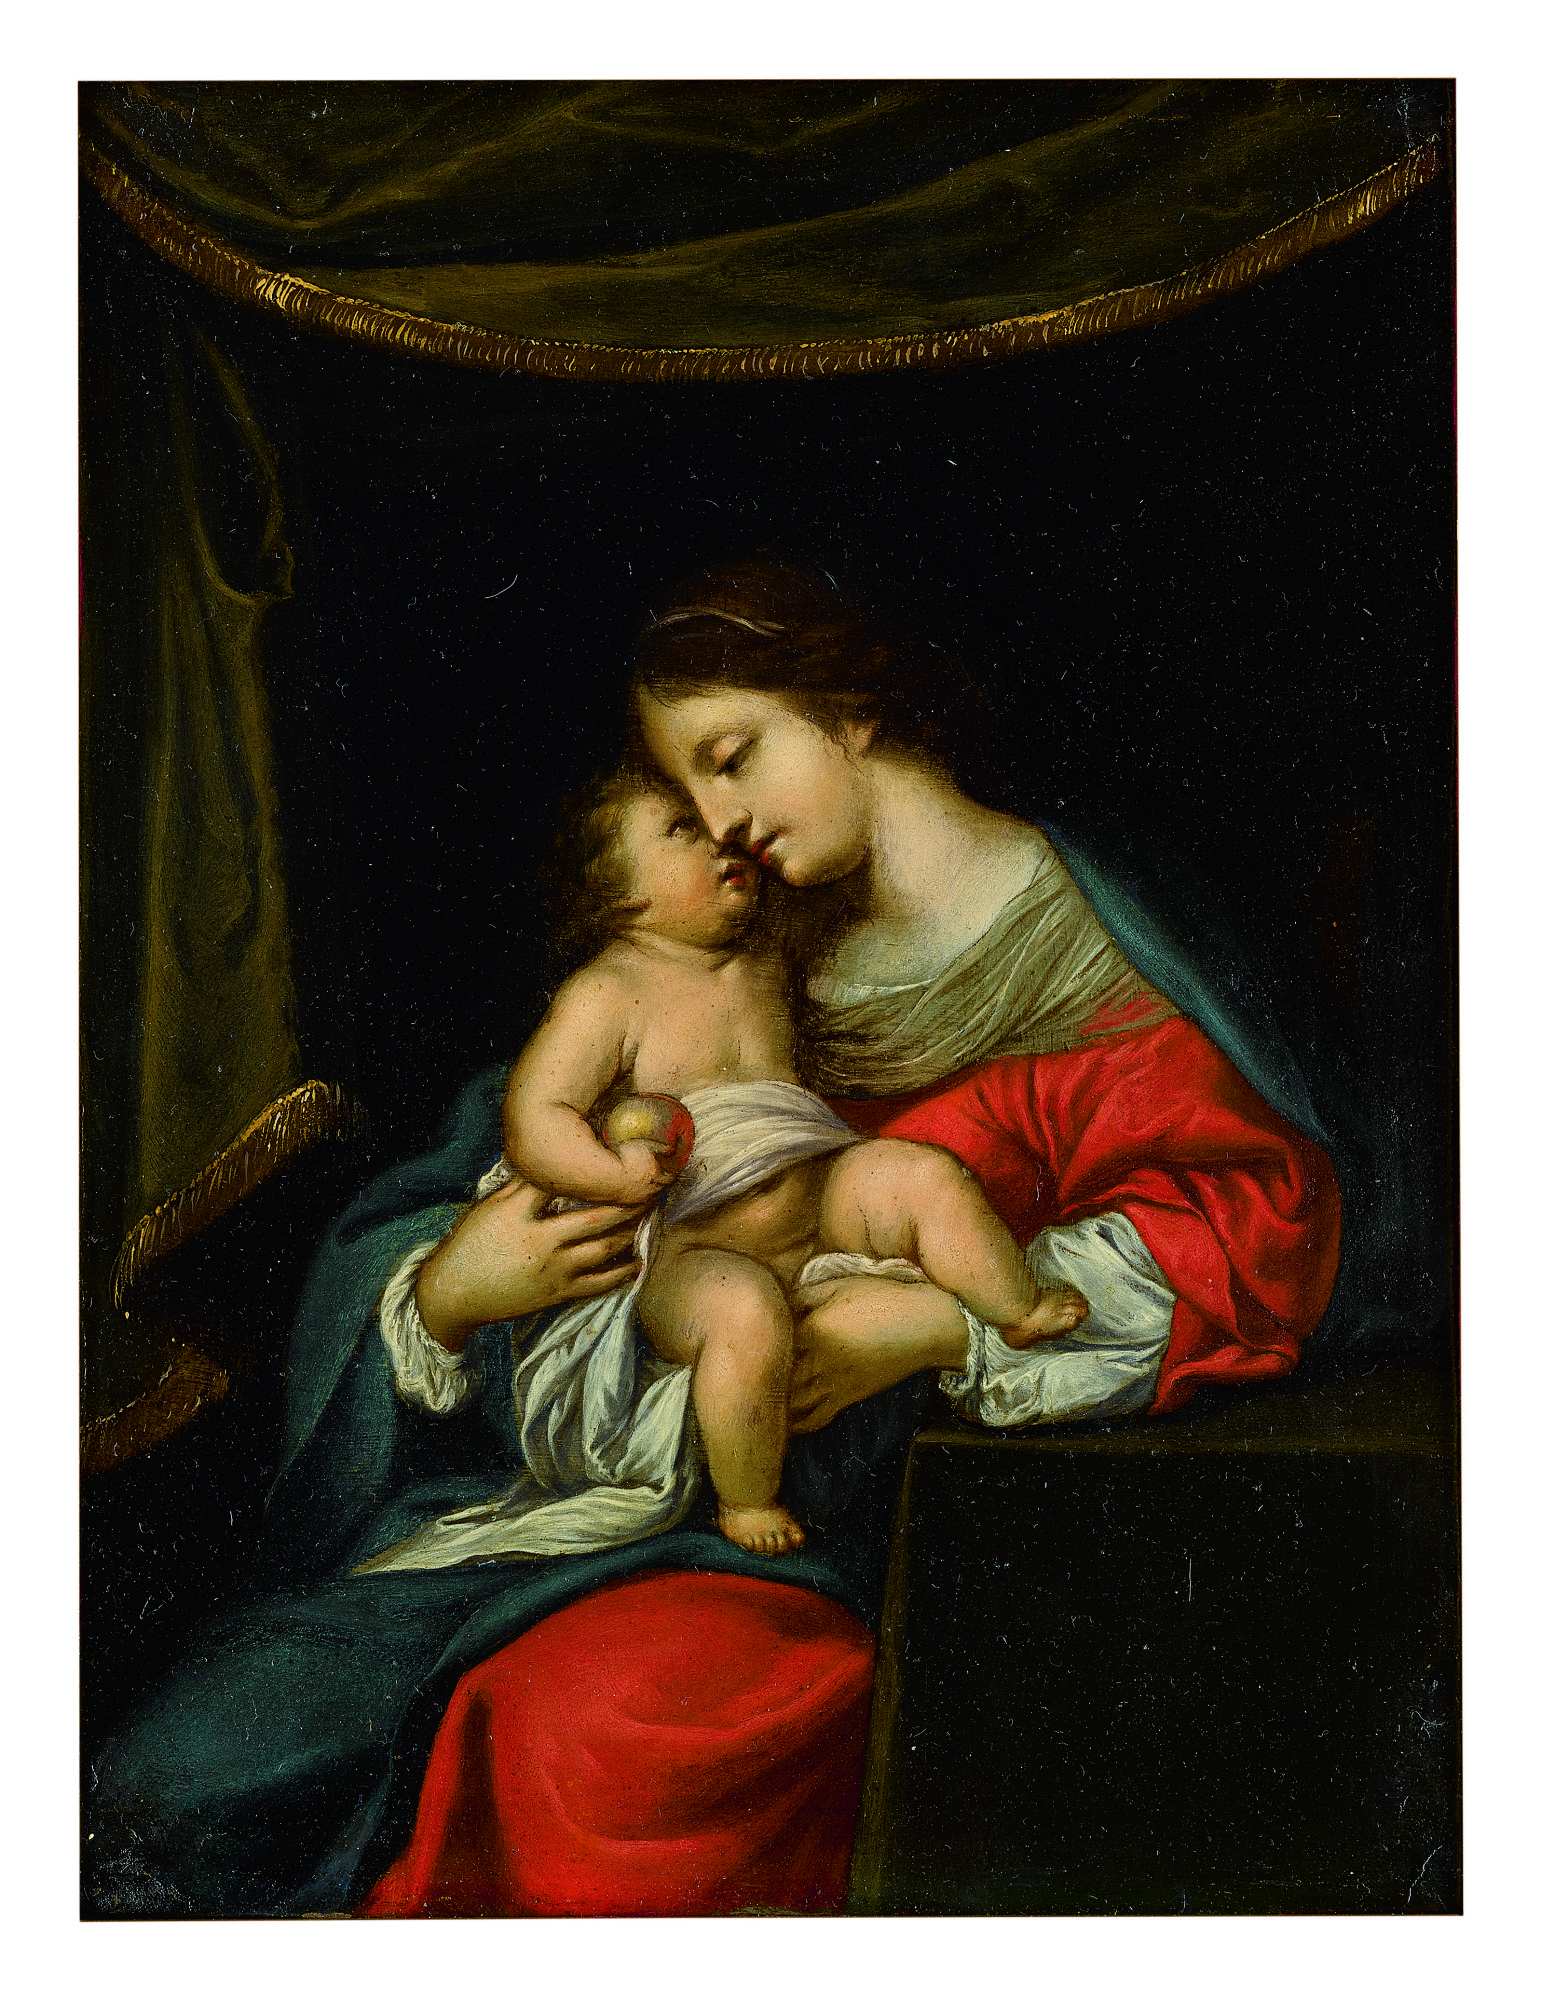 CIRCLE OF JACQUES STELLA | VIRGIN AND CHILD HOLDING AN APPLE